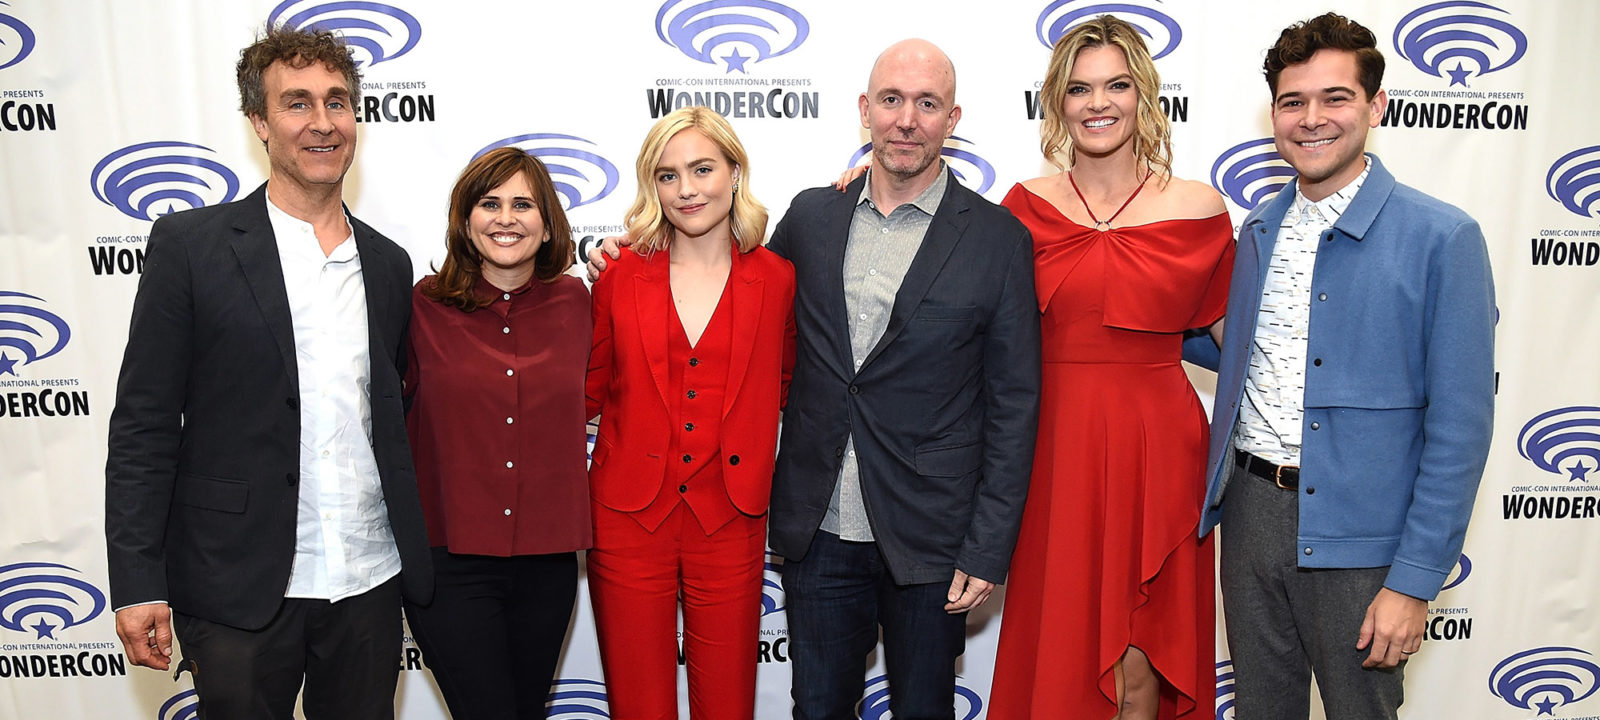 """Executive Producers, Showrunner & Stars of New YouTube Red Original Series """"Impulse"""" Debut Never-Before-Seen Footage for Fans at WonderCon Panel in Anaheim, March 24, 2018"""